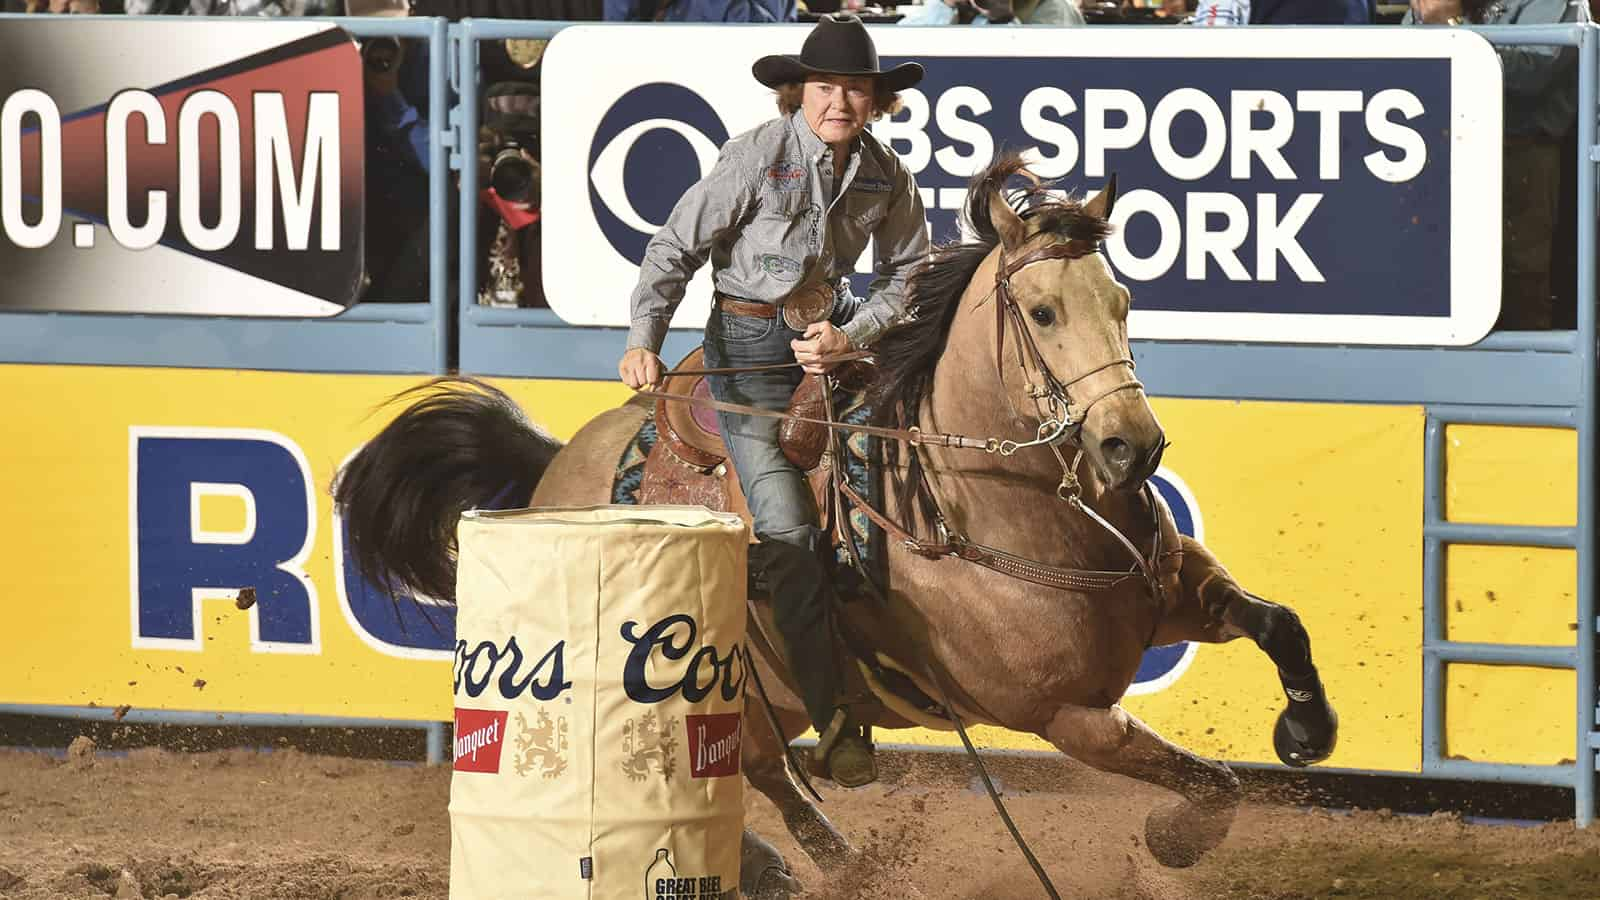 mary burger and mo cowgirl magazine barrel racer